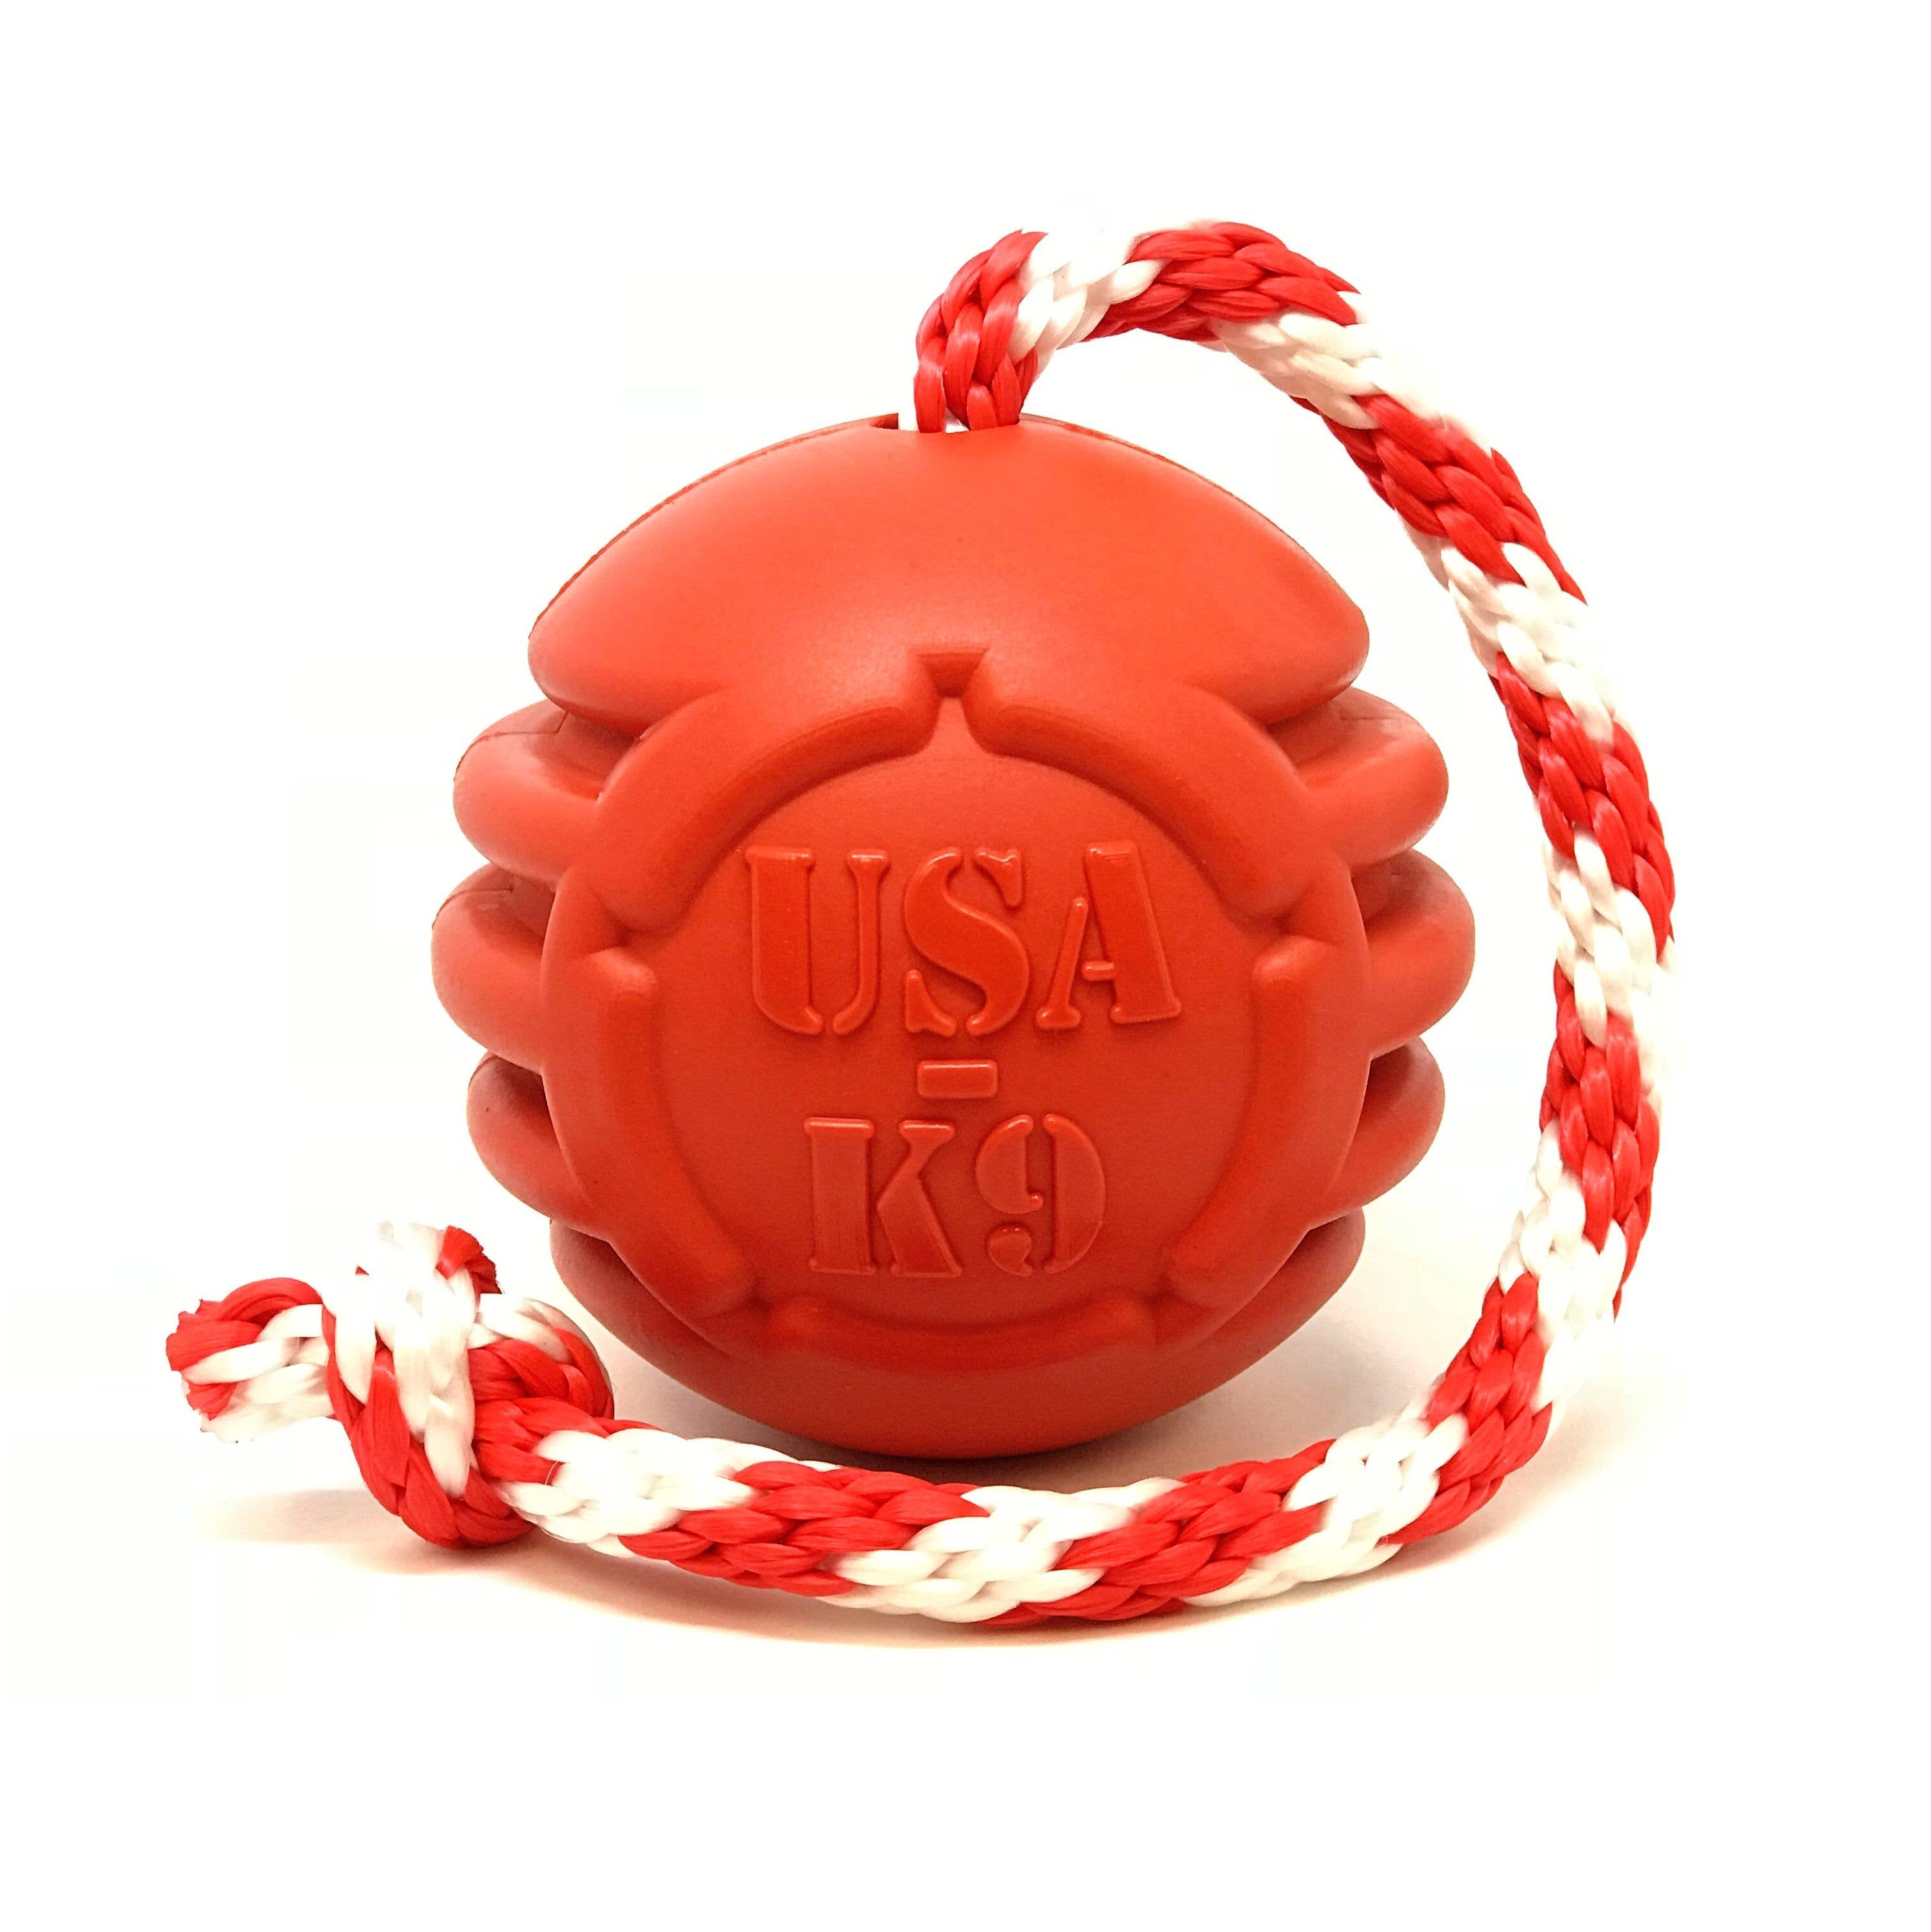 USA-K9 Stars and Stripes- Durable Reward Toy - Large - Red   Trada Marketplace